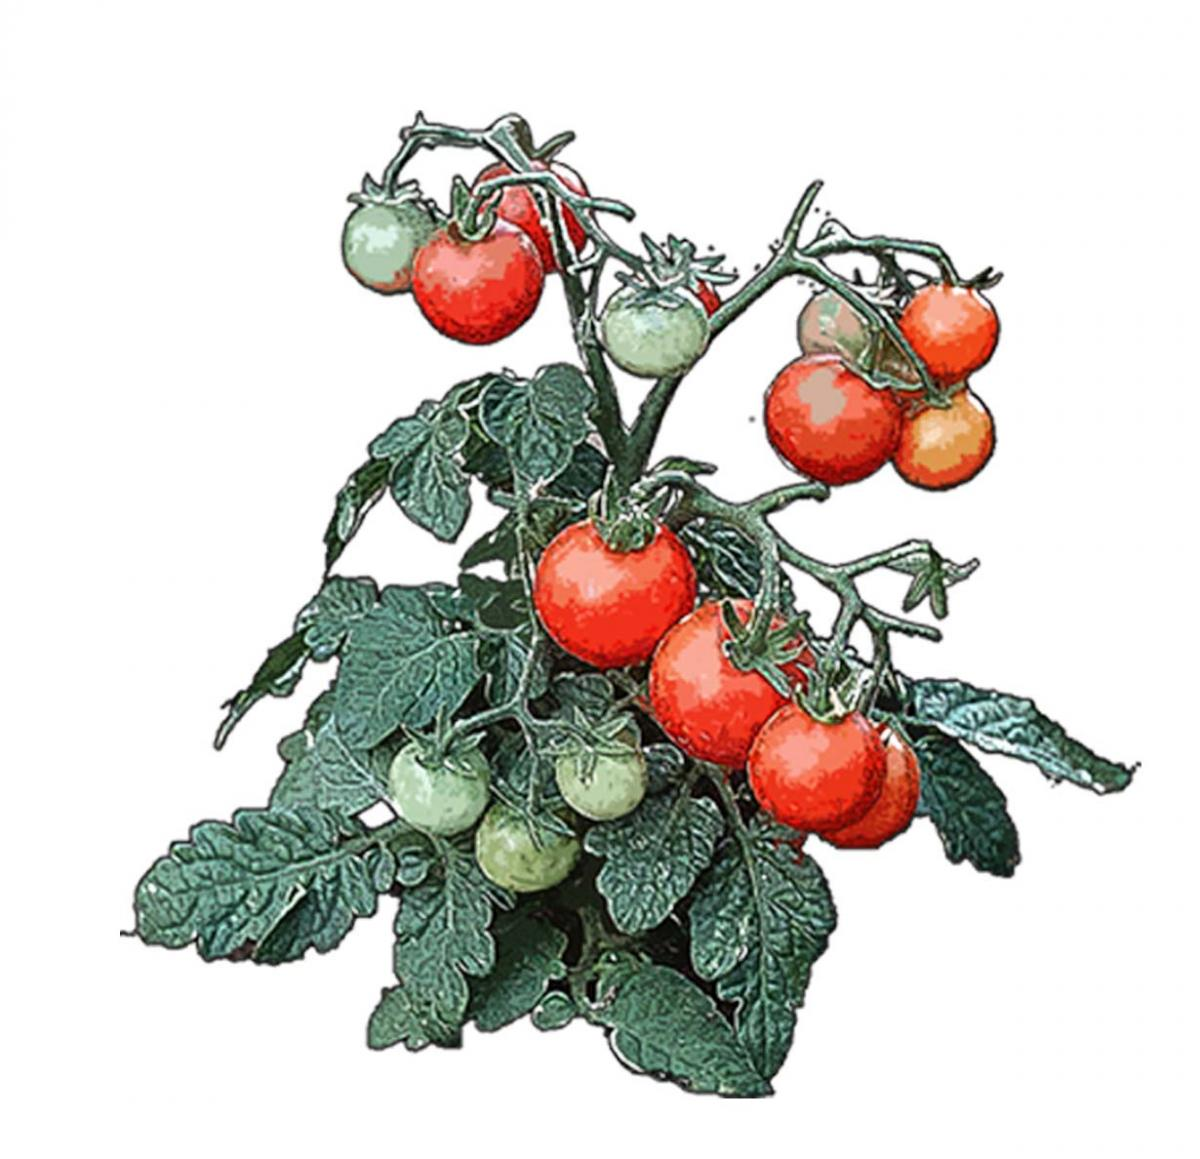 Food - Tomato Vine - 00I - Non-country specific